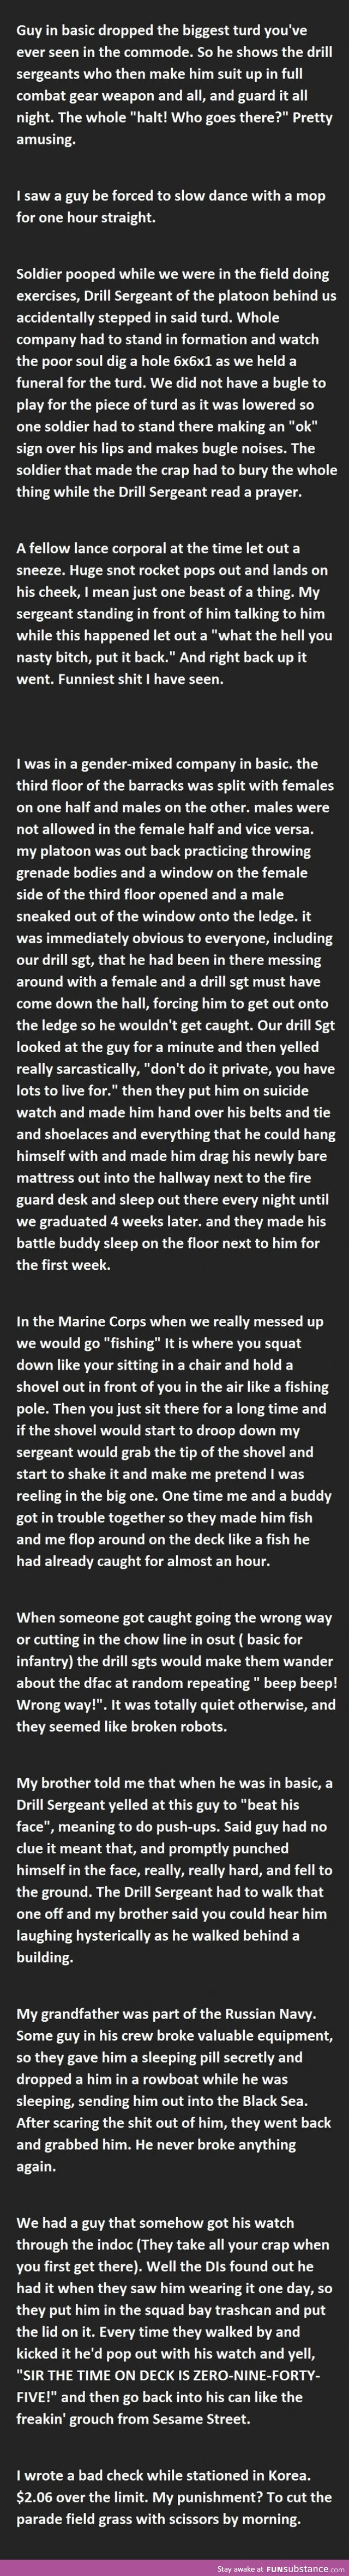 20 Funny Military Punishments (Part 2) #coupon code nicesup123 gets 25% off at www.Provestra.com www.Skinception.com and www.leadingedgehealth.com